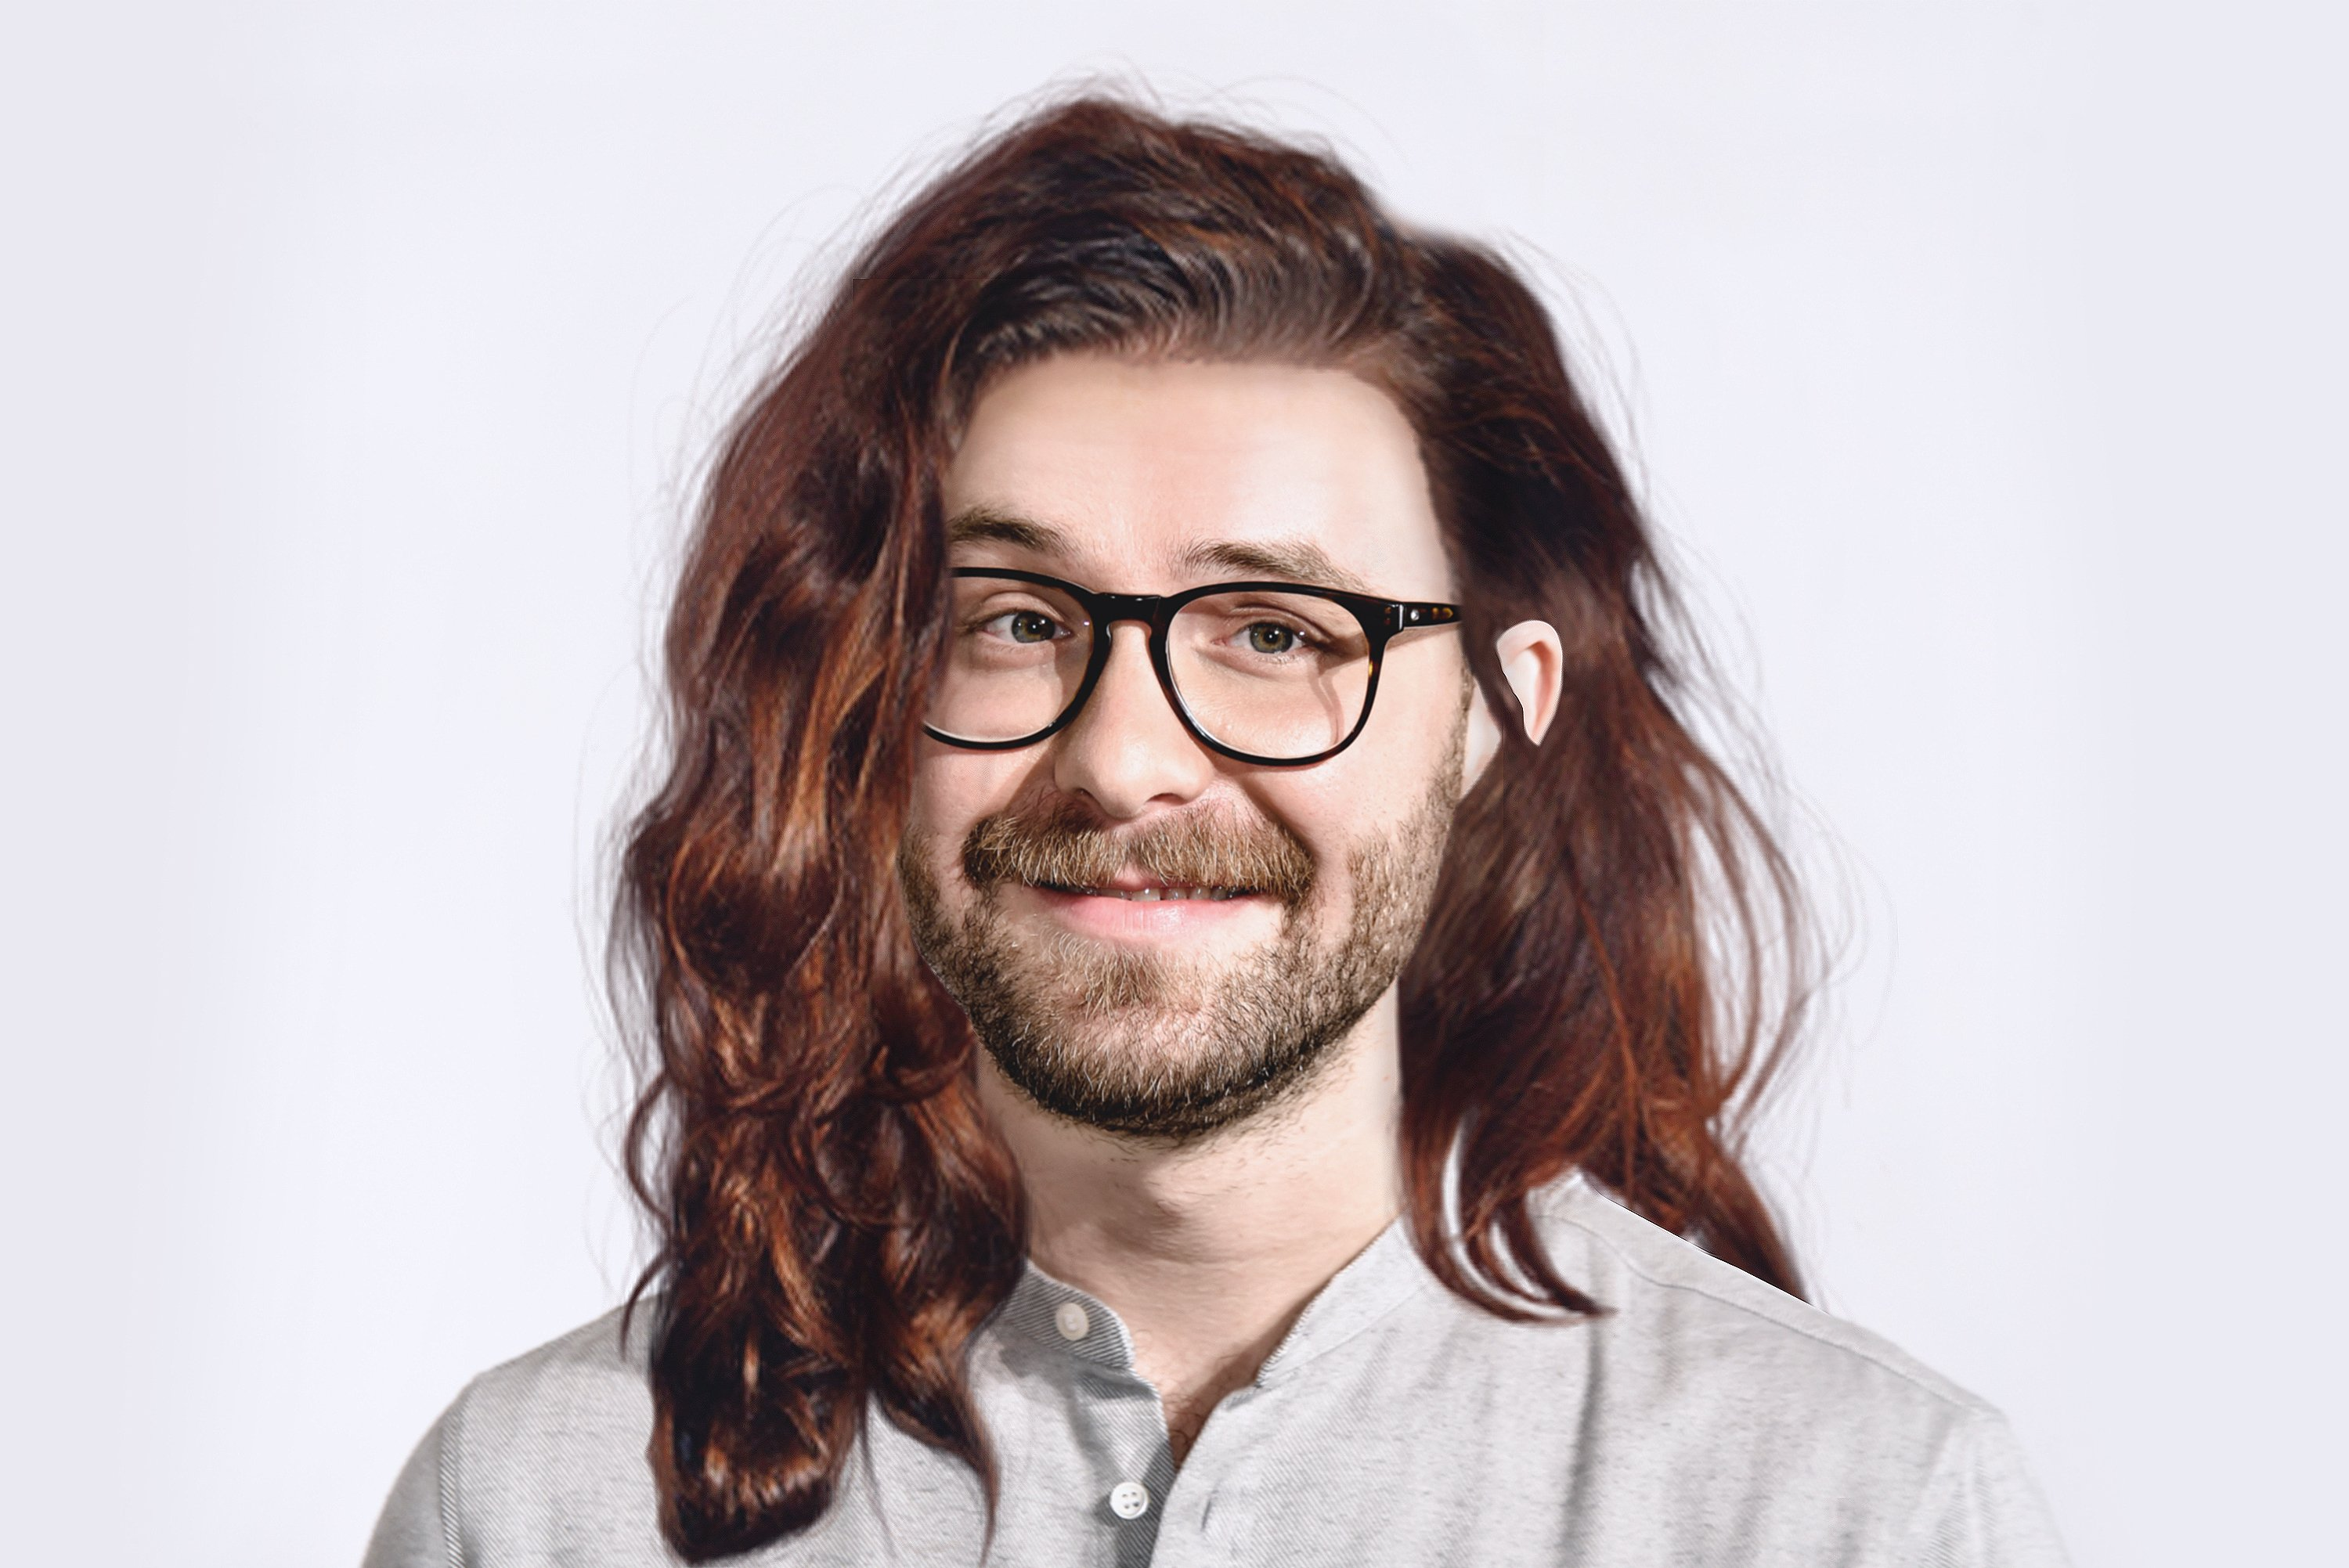 Mark Forster (Photoshop)   Quelle: Getty Images/Photoshop